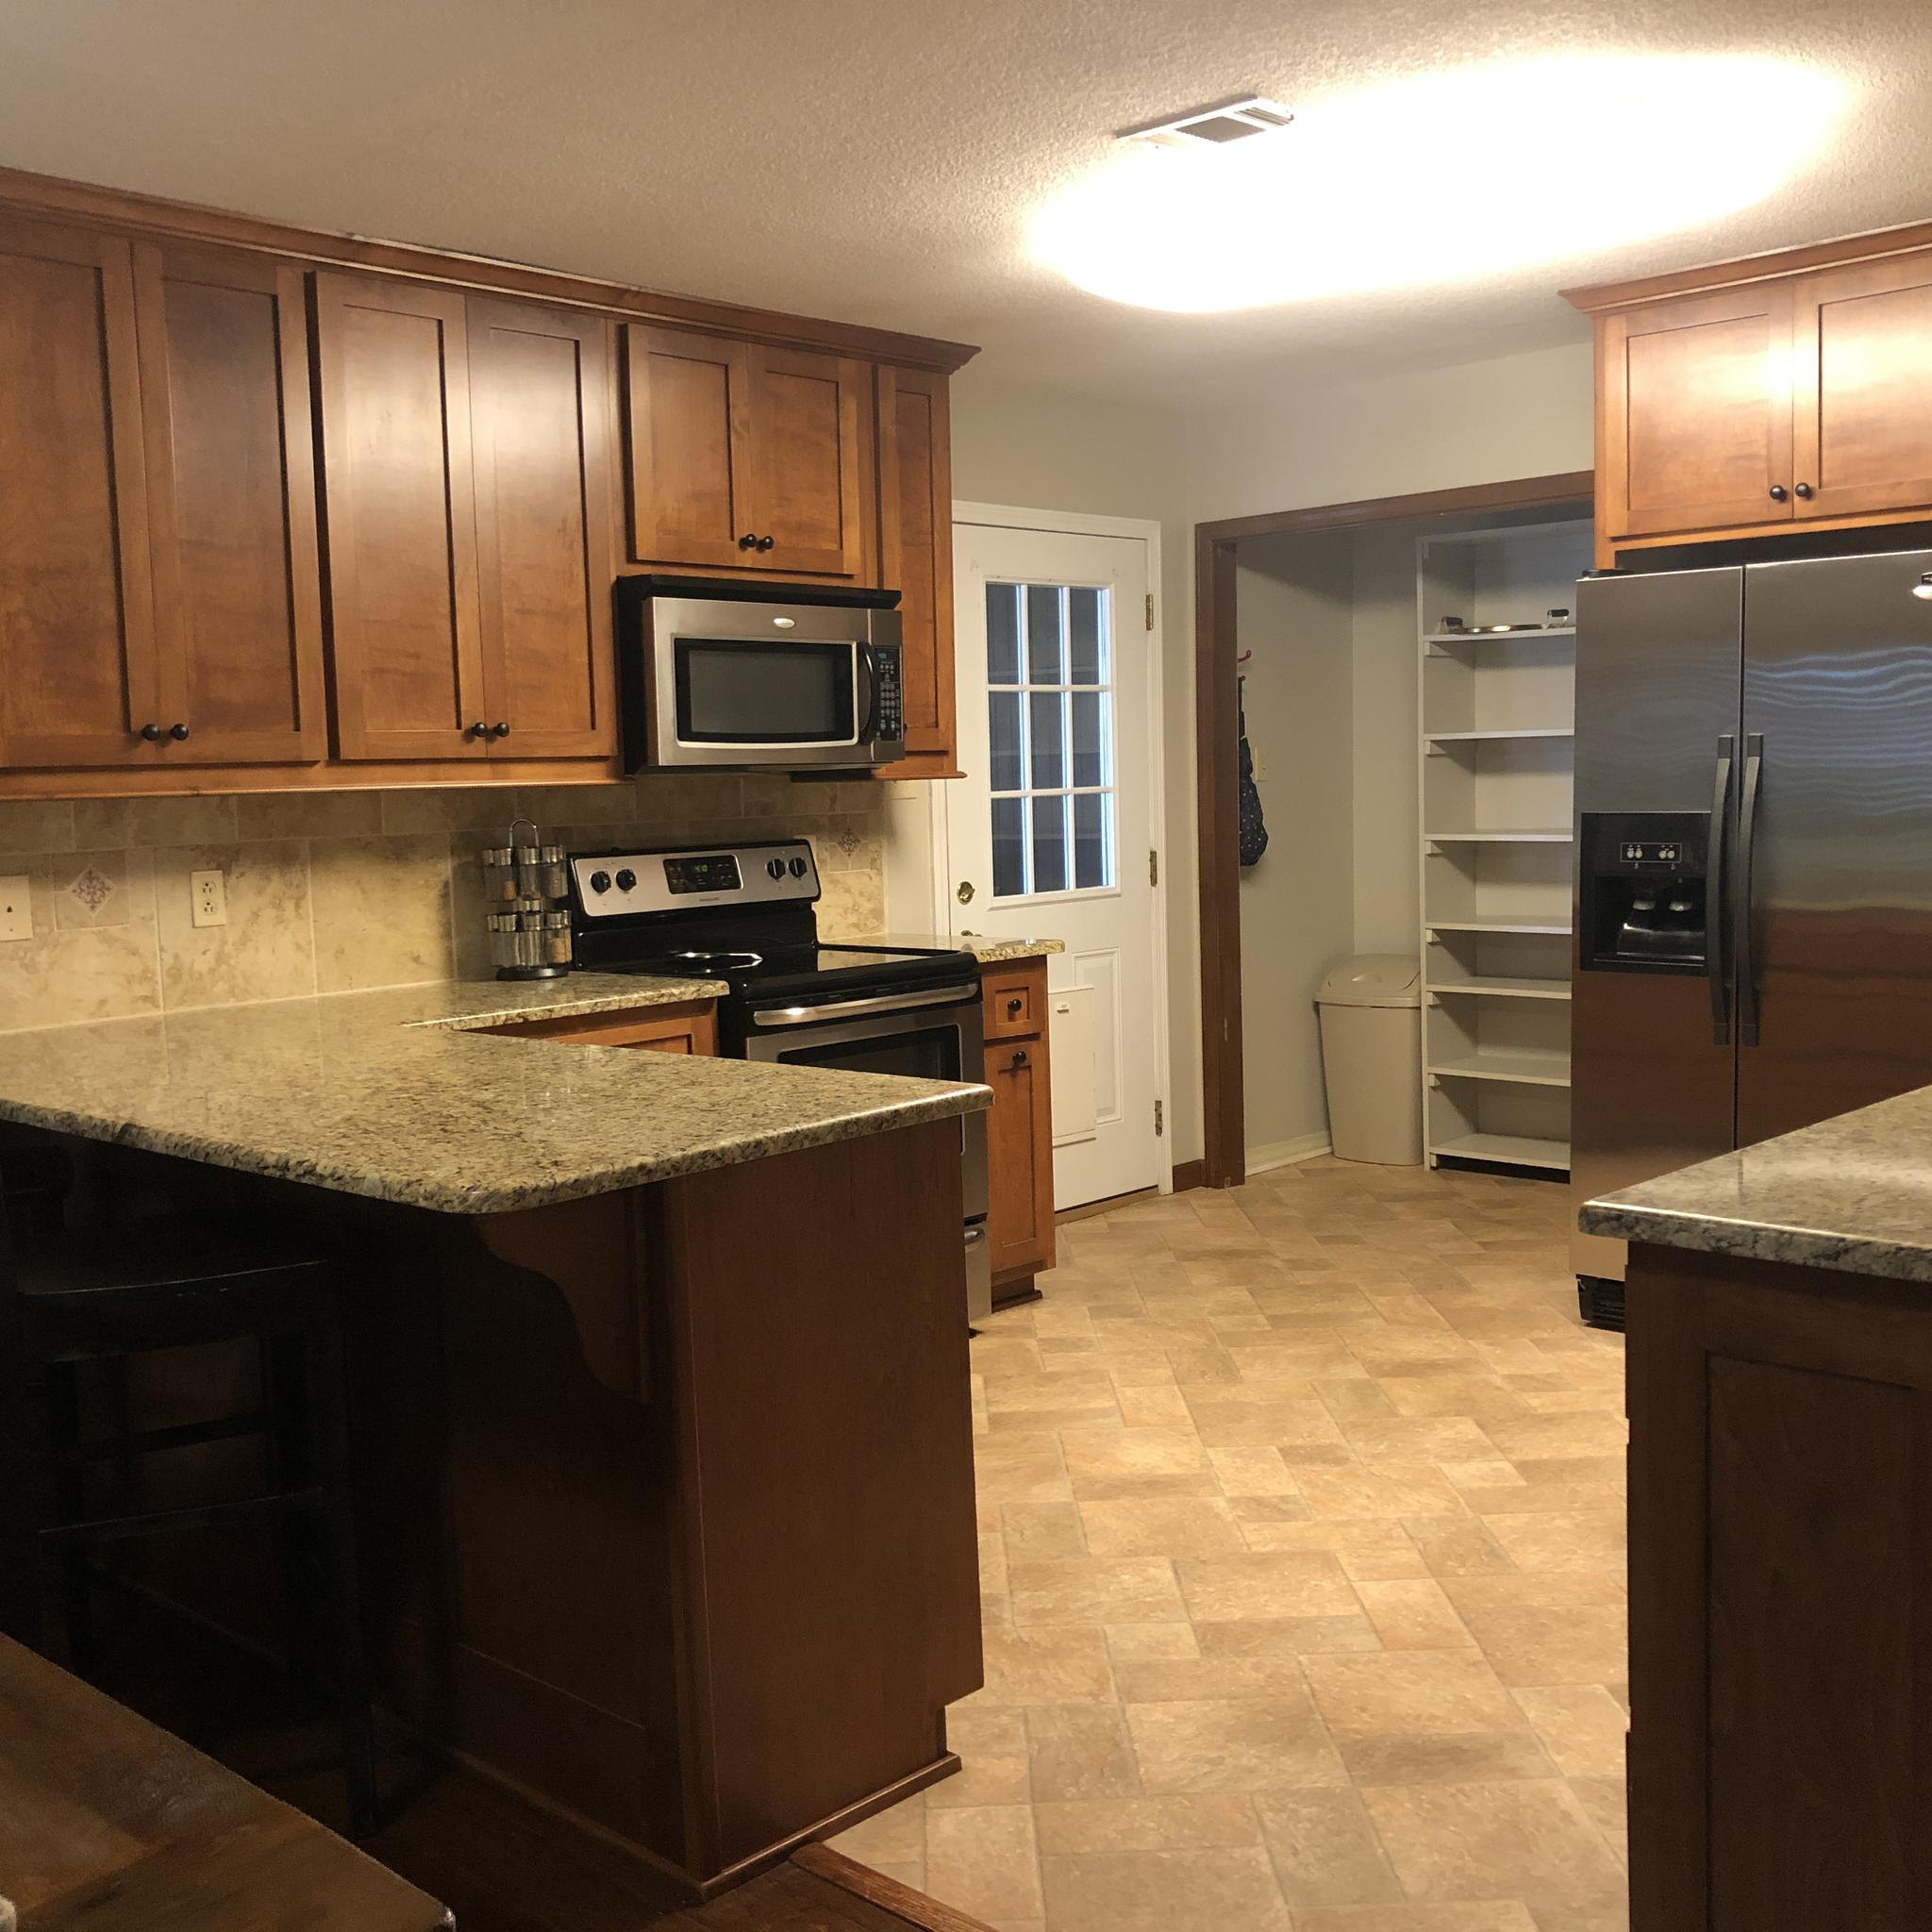 3BR Home For Rent Near Anniston